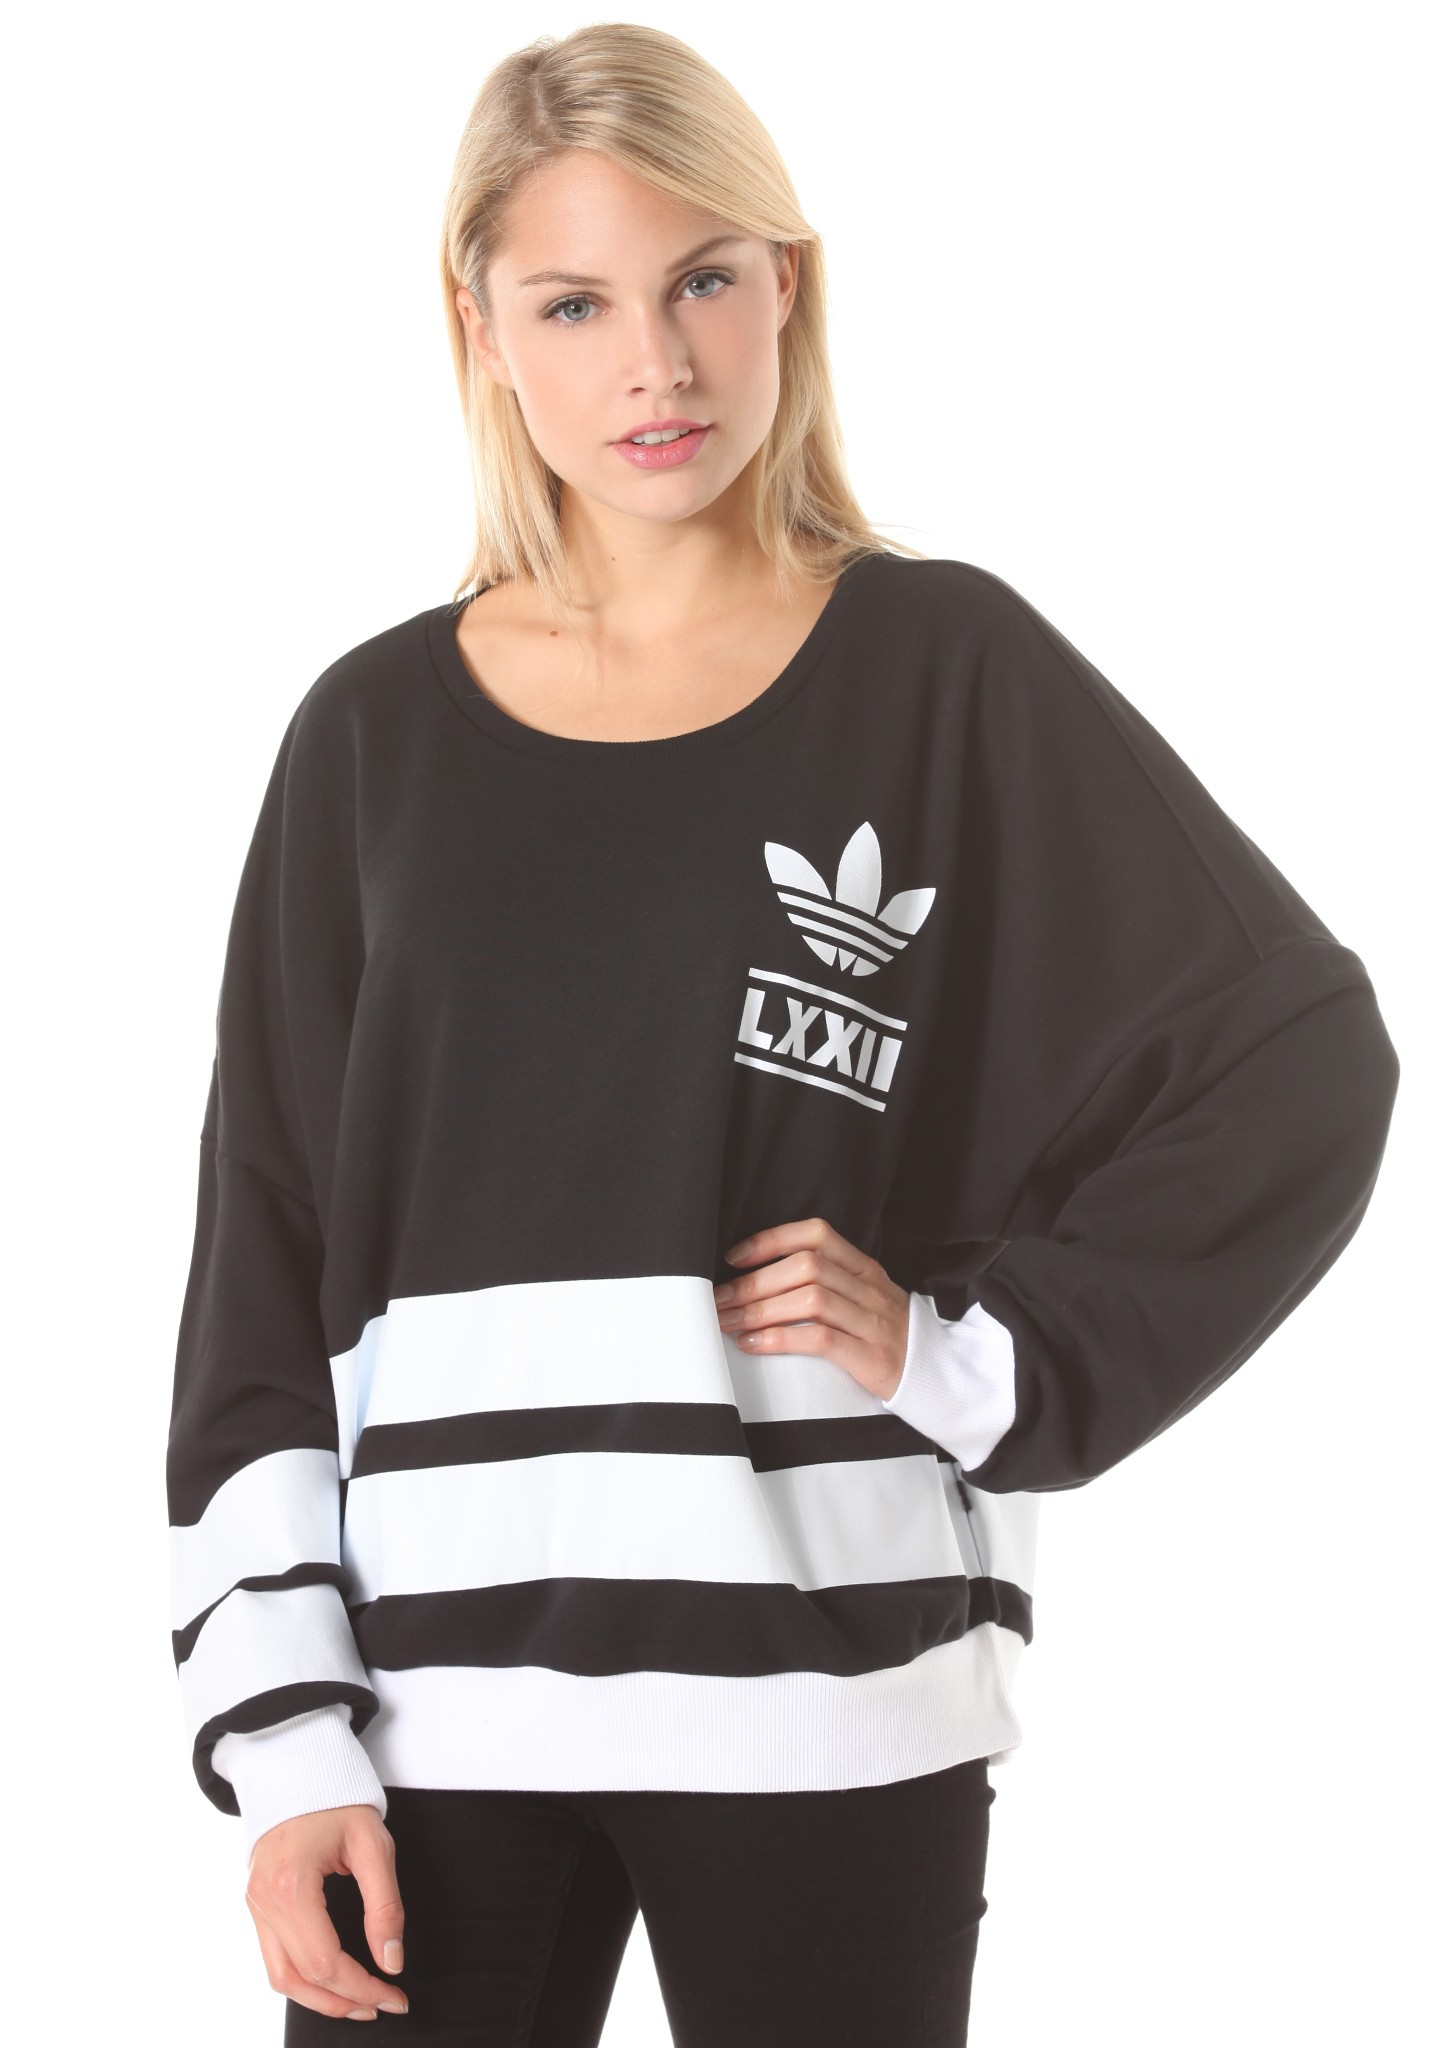 neu adidas brln 3str damen sweatshirt. Black Bedroom Furniture Sets. Home Design Ideas